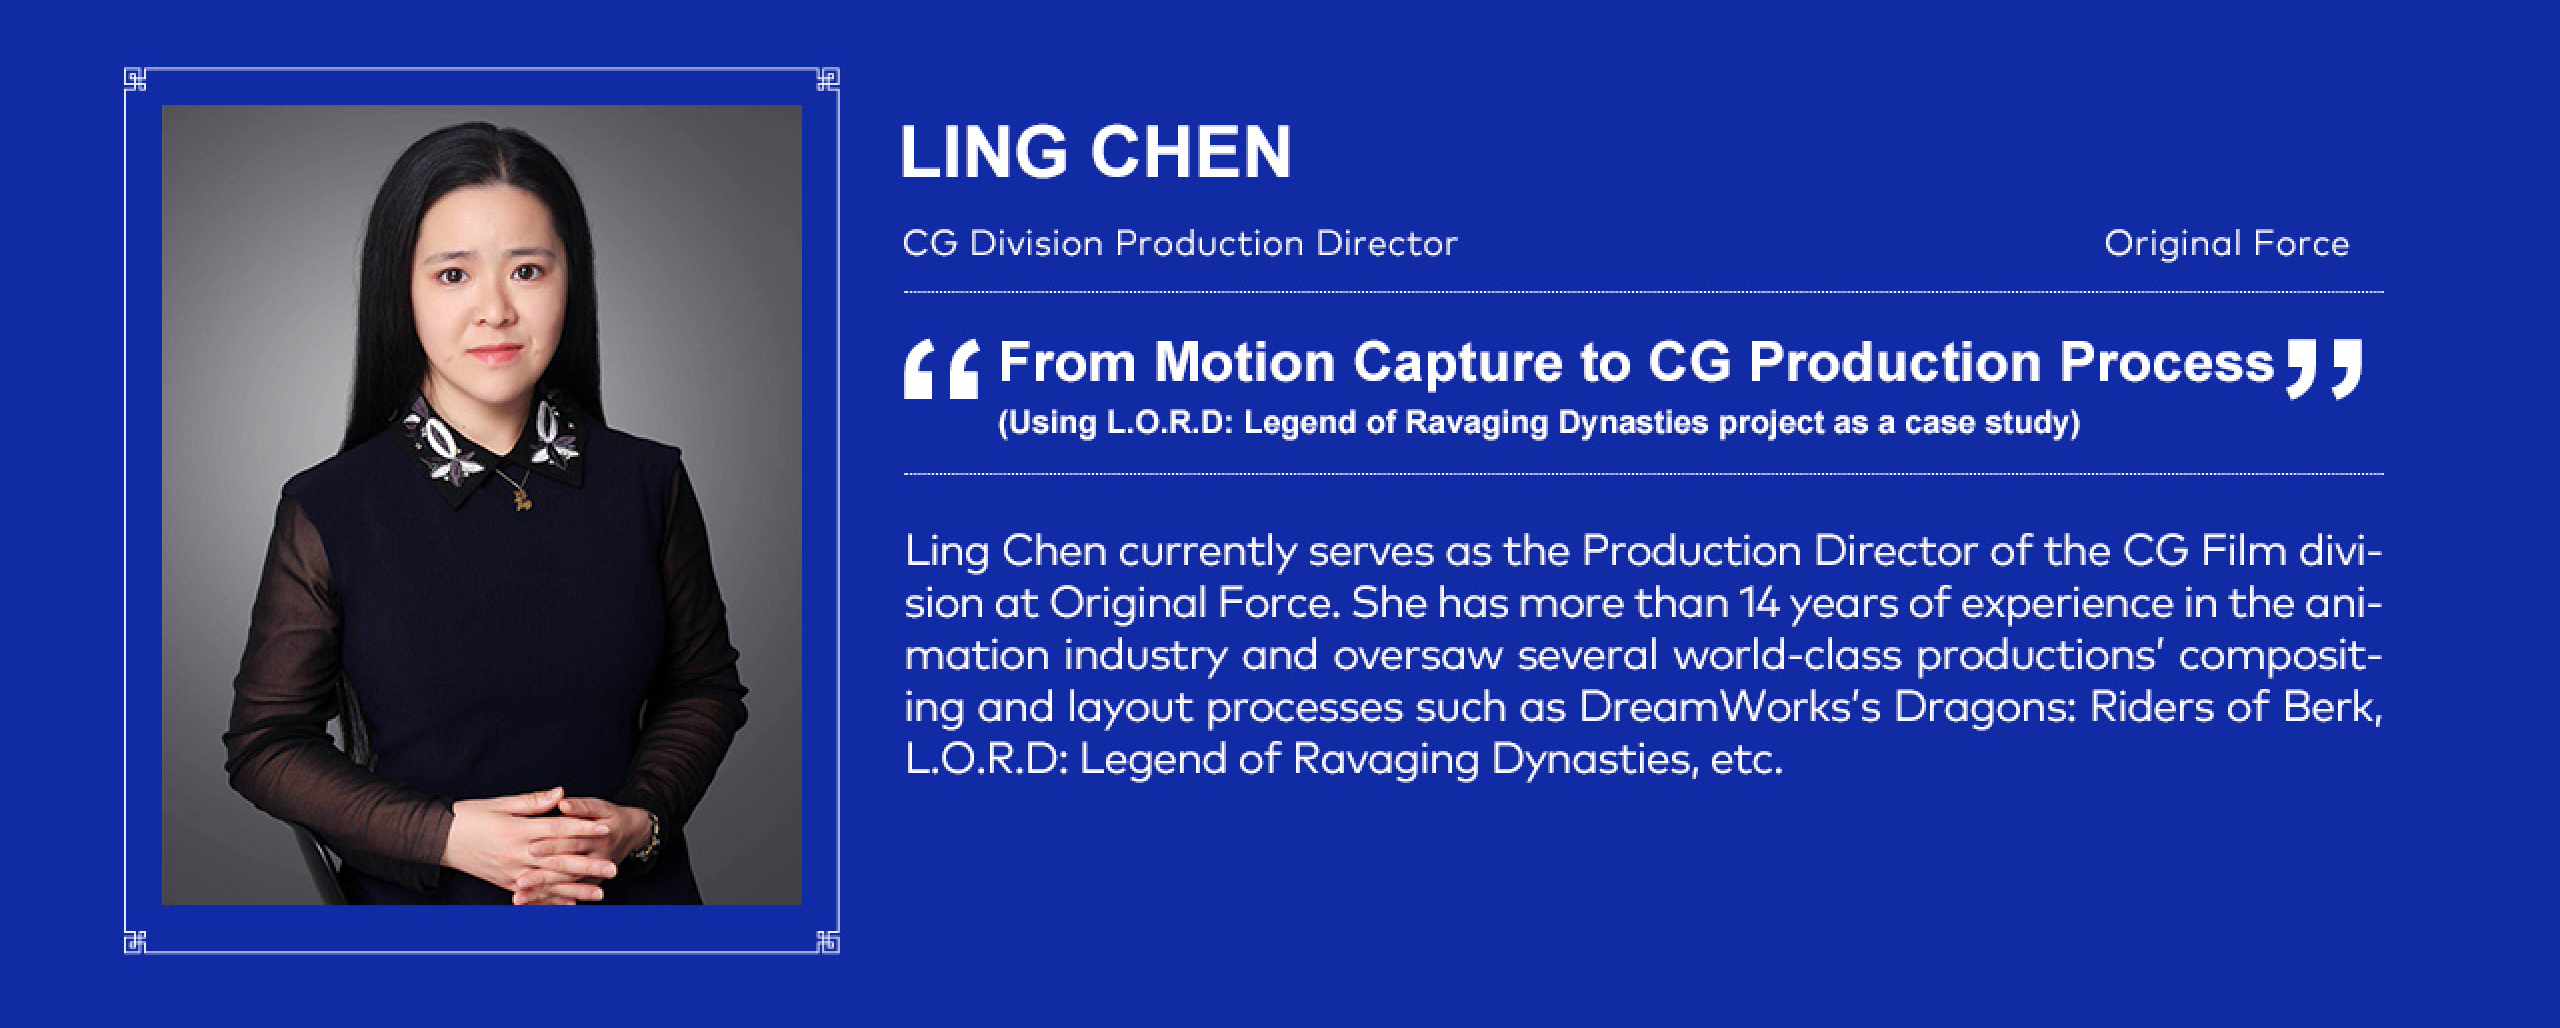 Ling Chen - CG Division Production Director